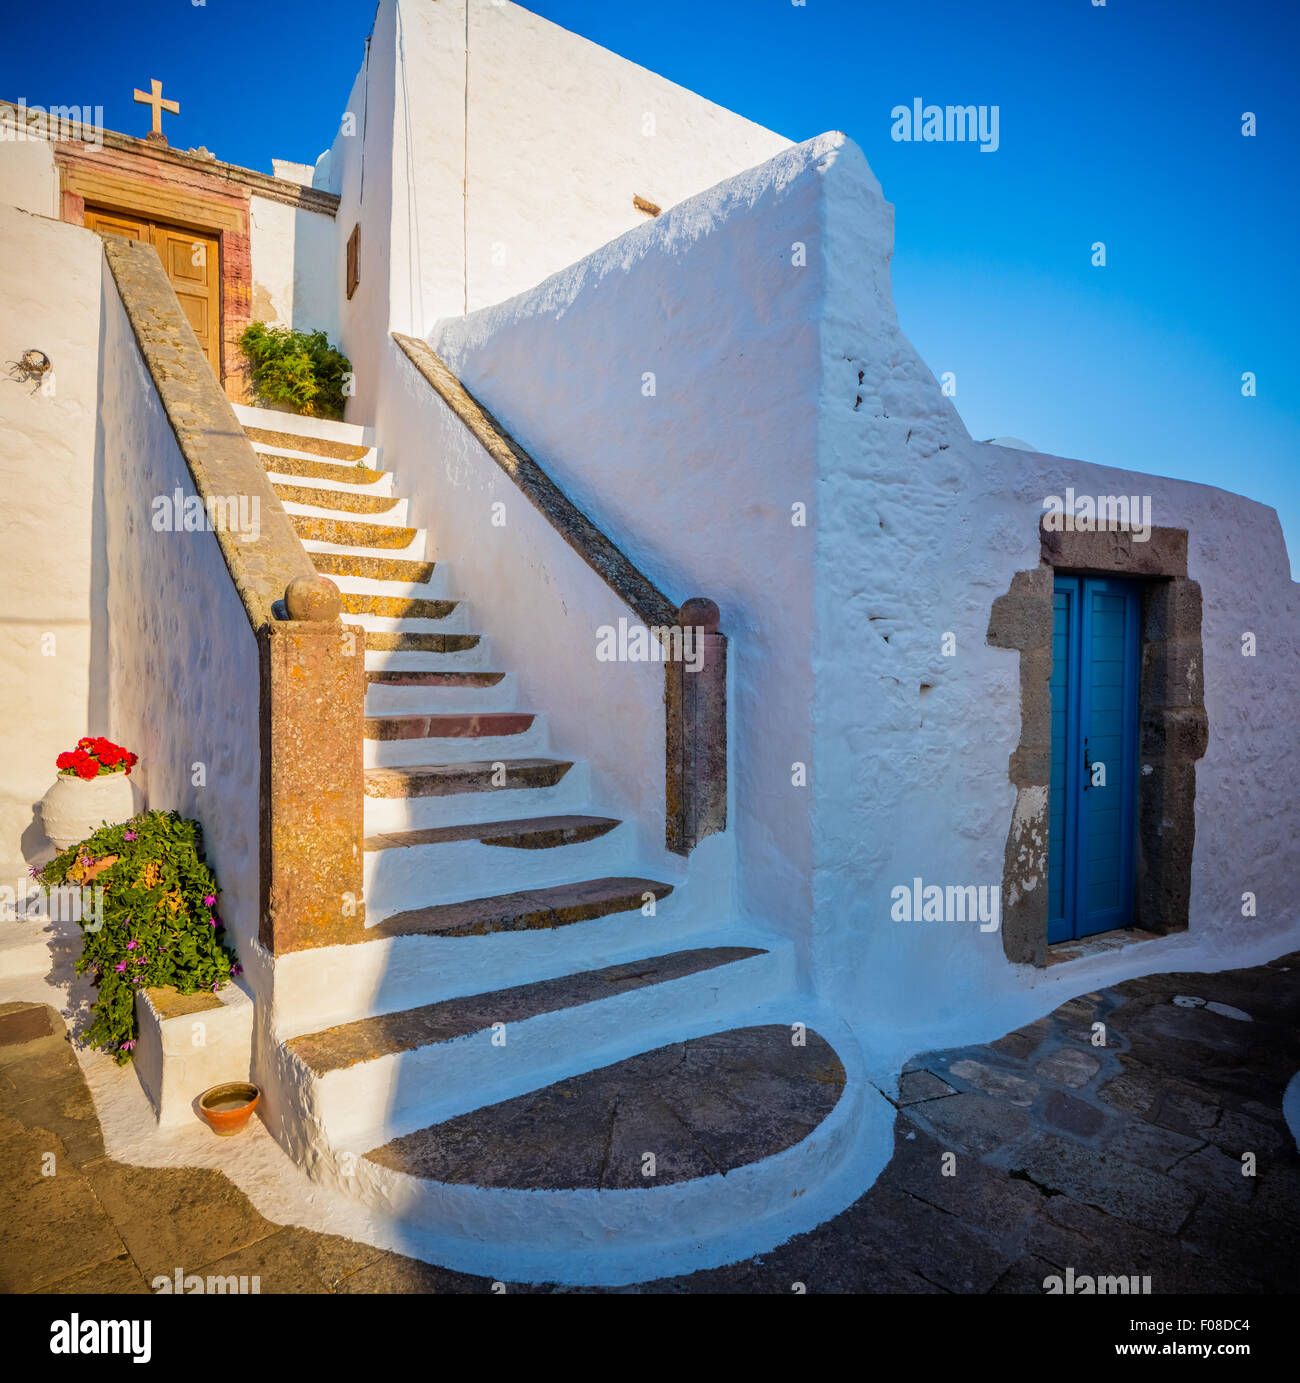 Chapel in the town of Chora on Patmos island in Greece. - Stock Image